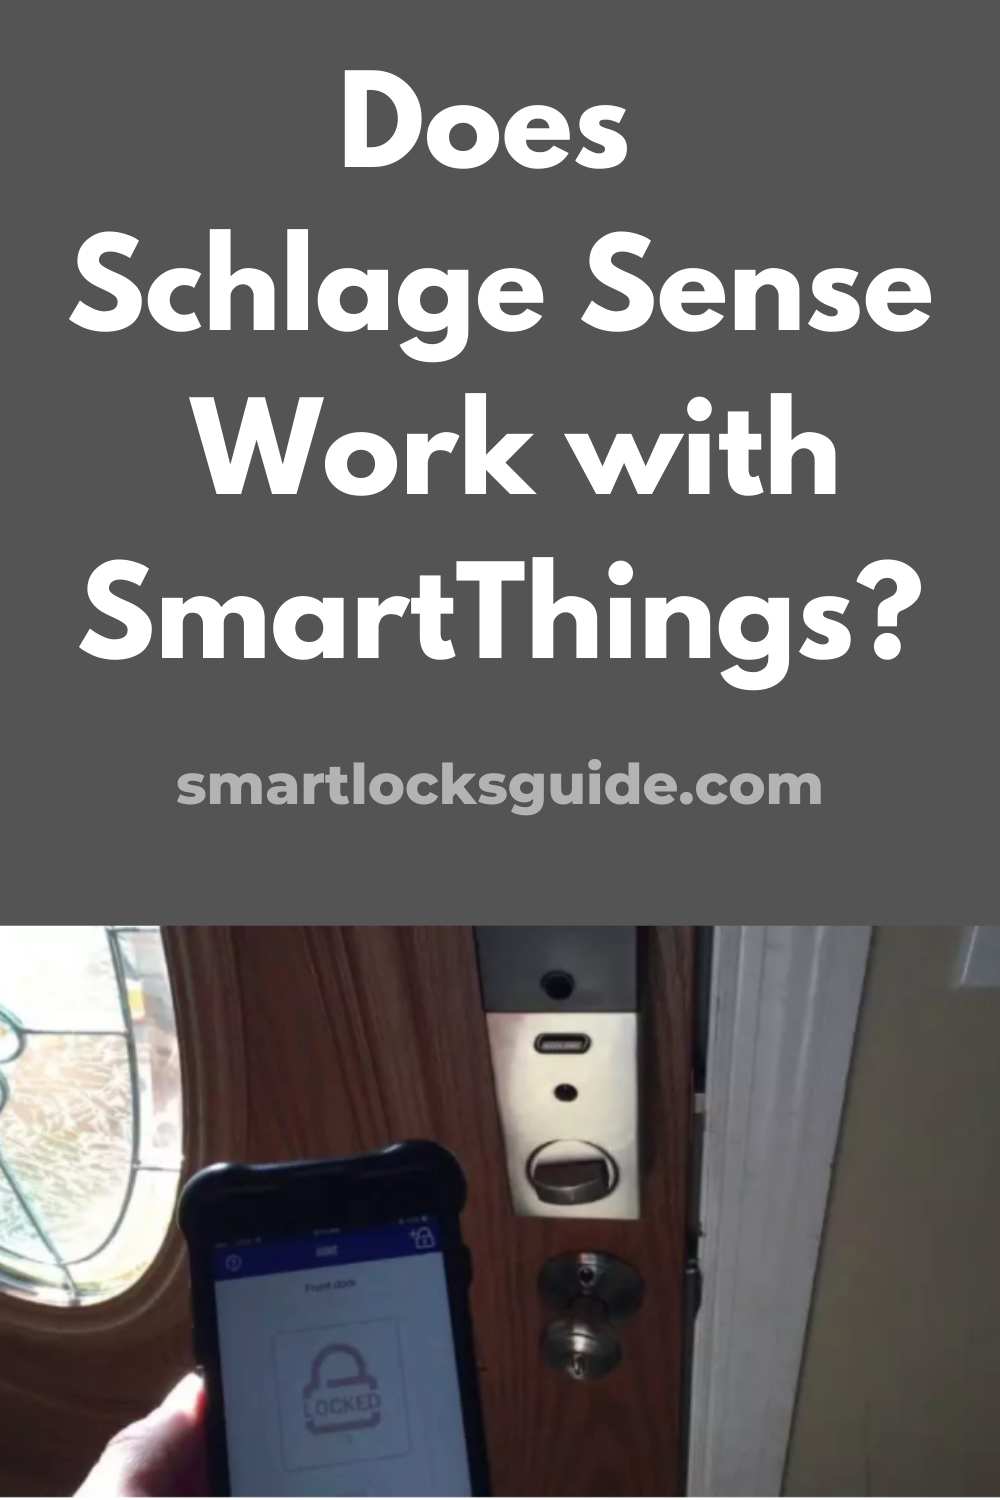 Does Schlage Sense Work with SmartThings in 2020